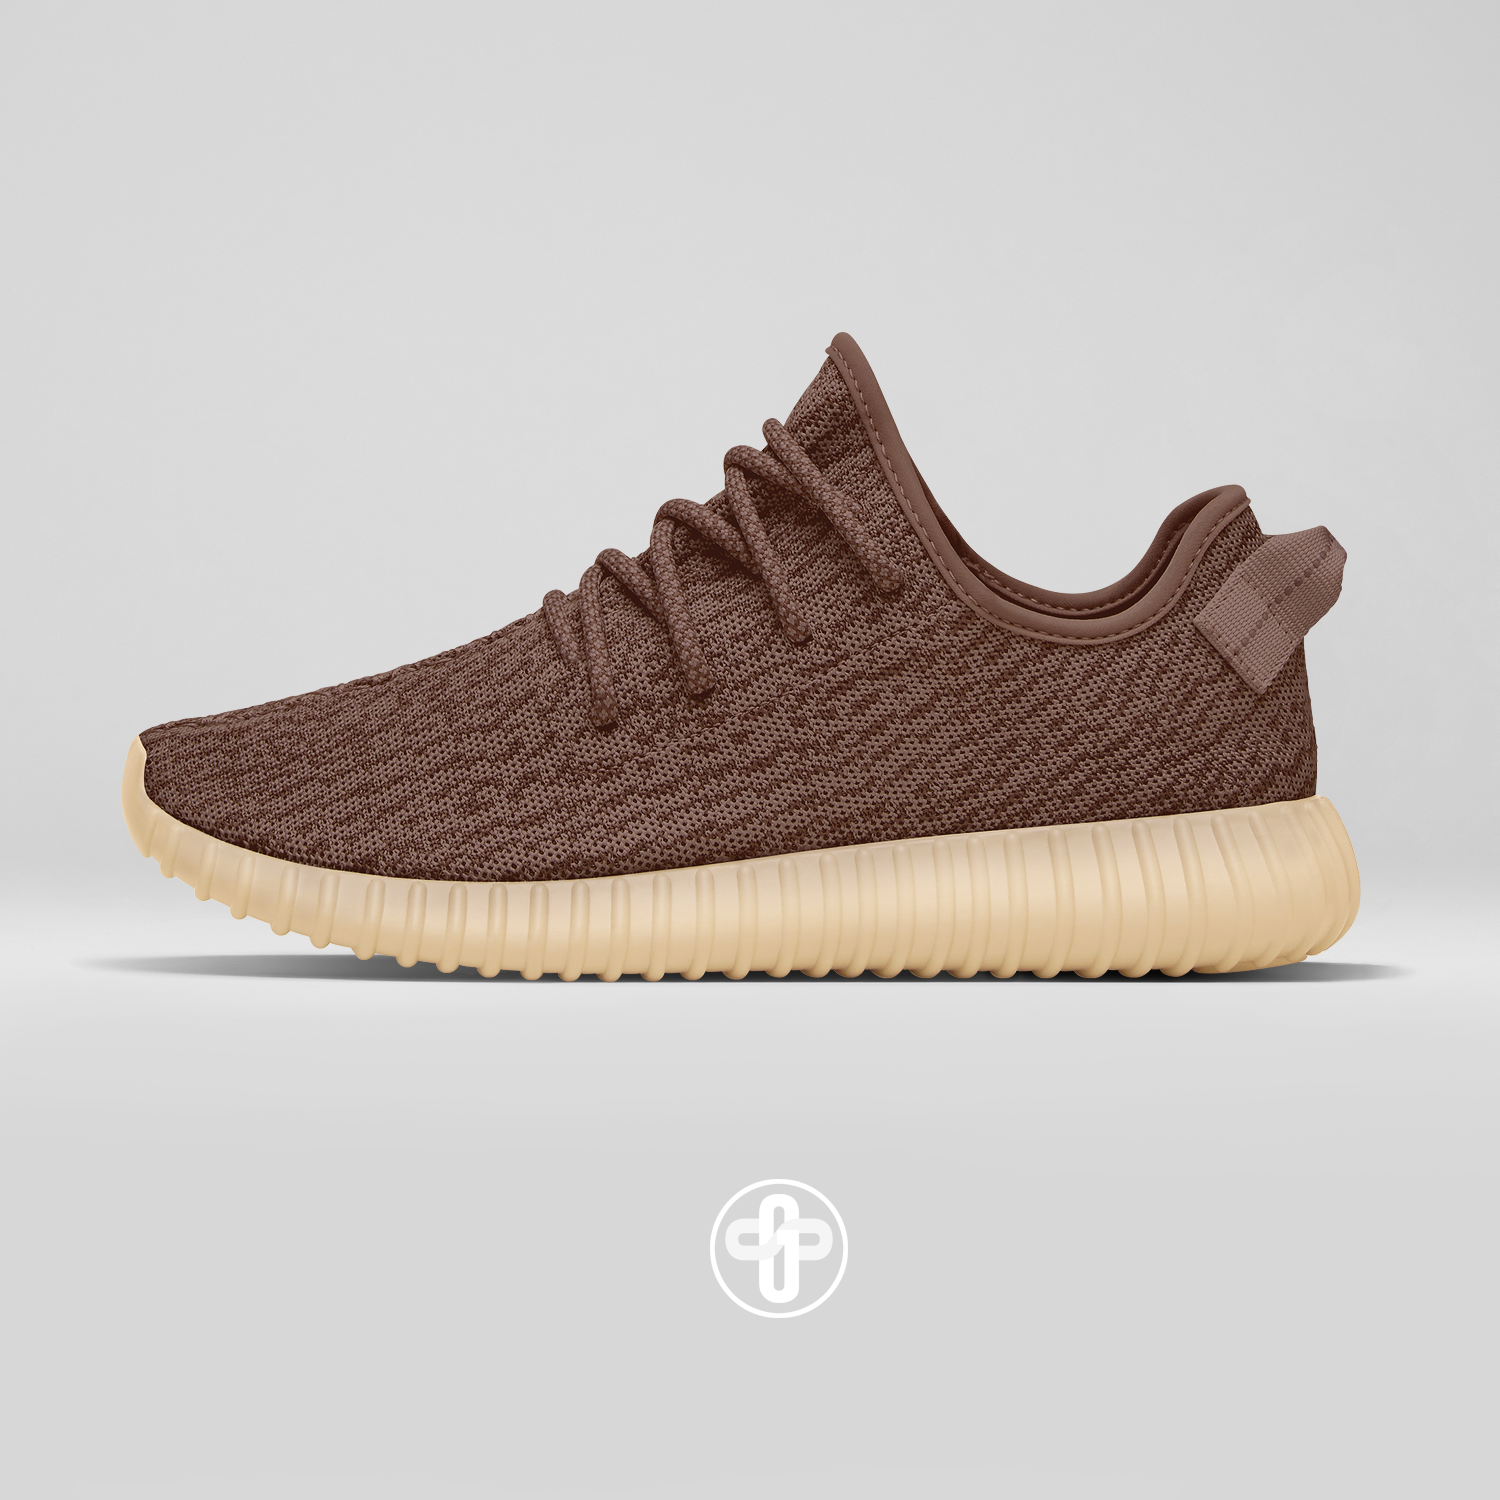 Adidas Yeezy Boost 350 Chocolate Brown  c01cb12a9